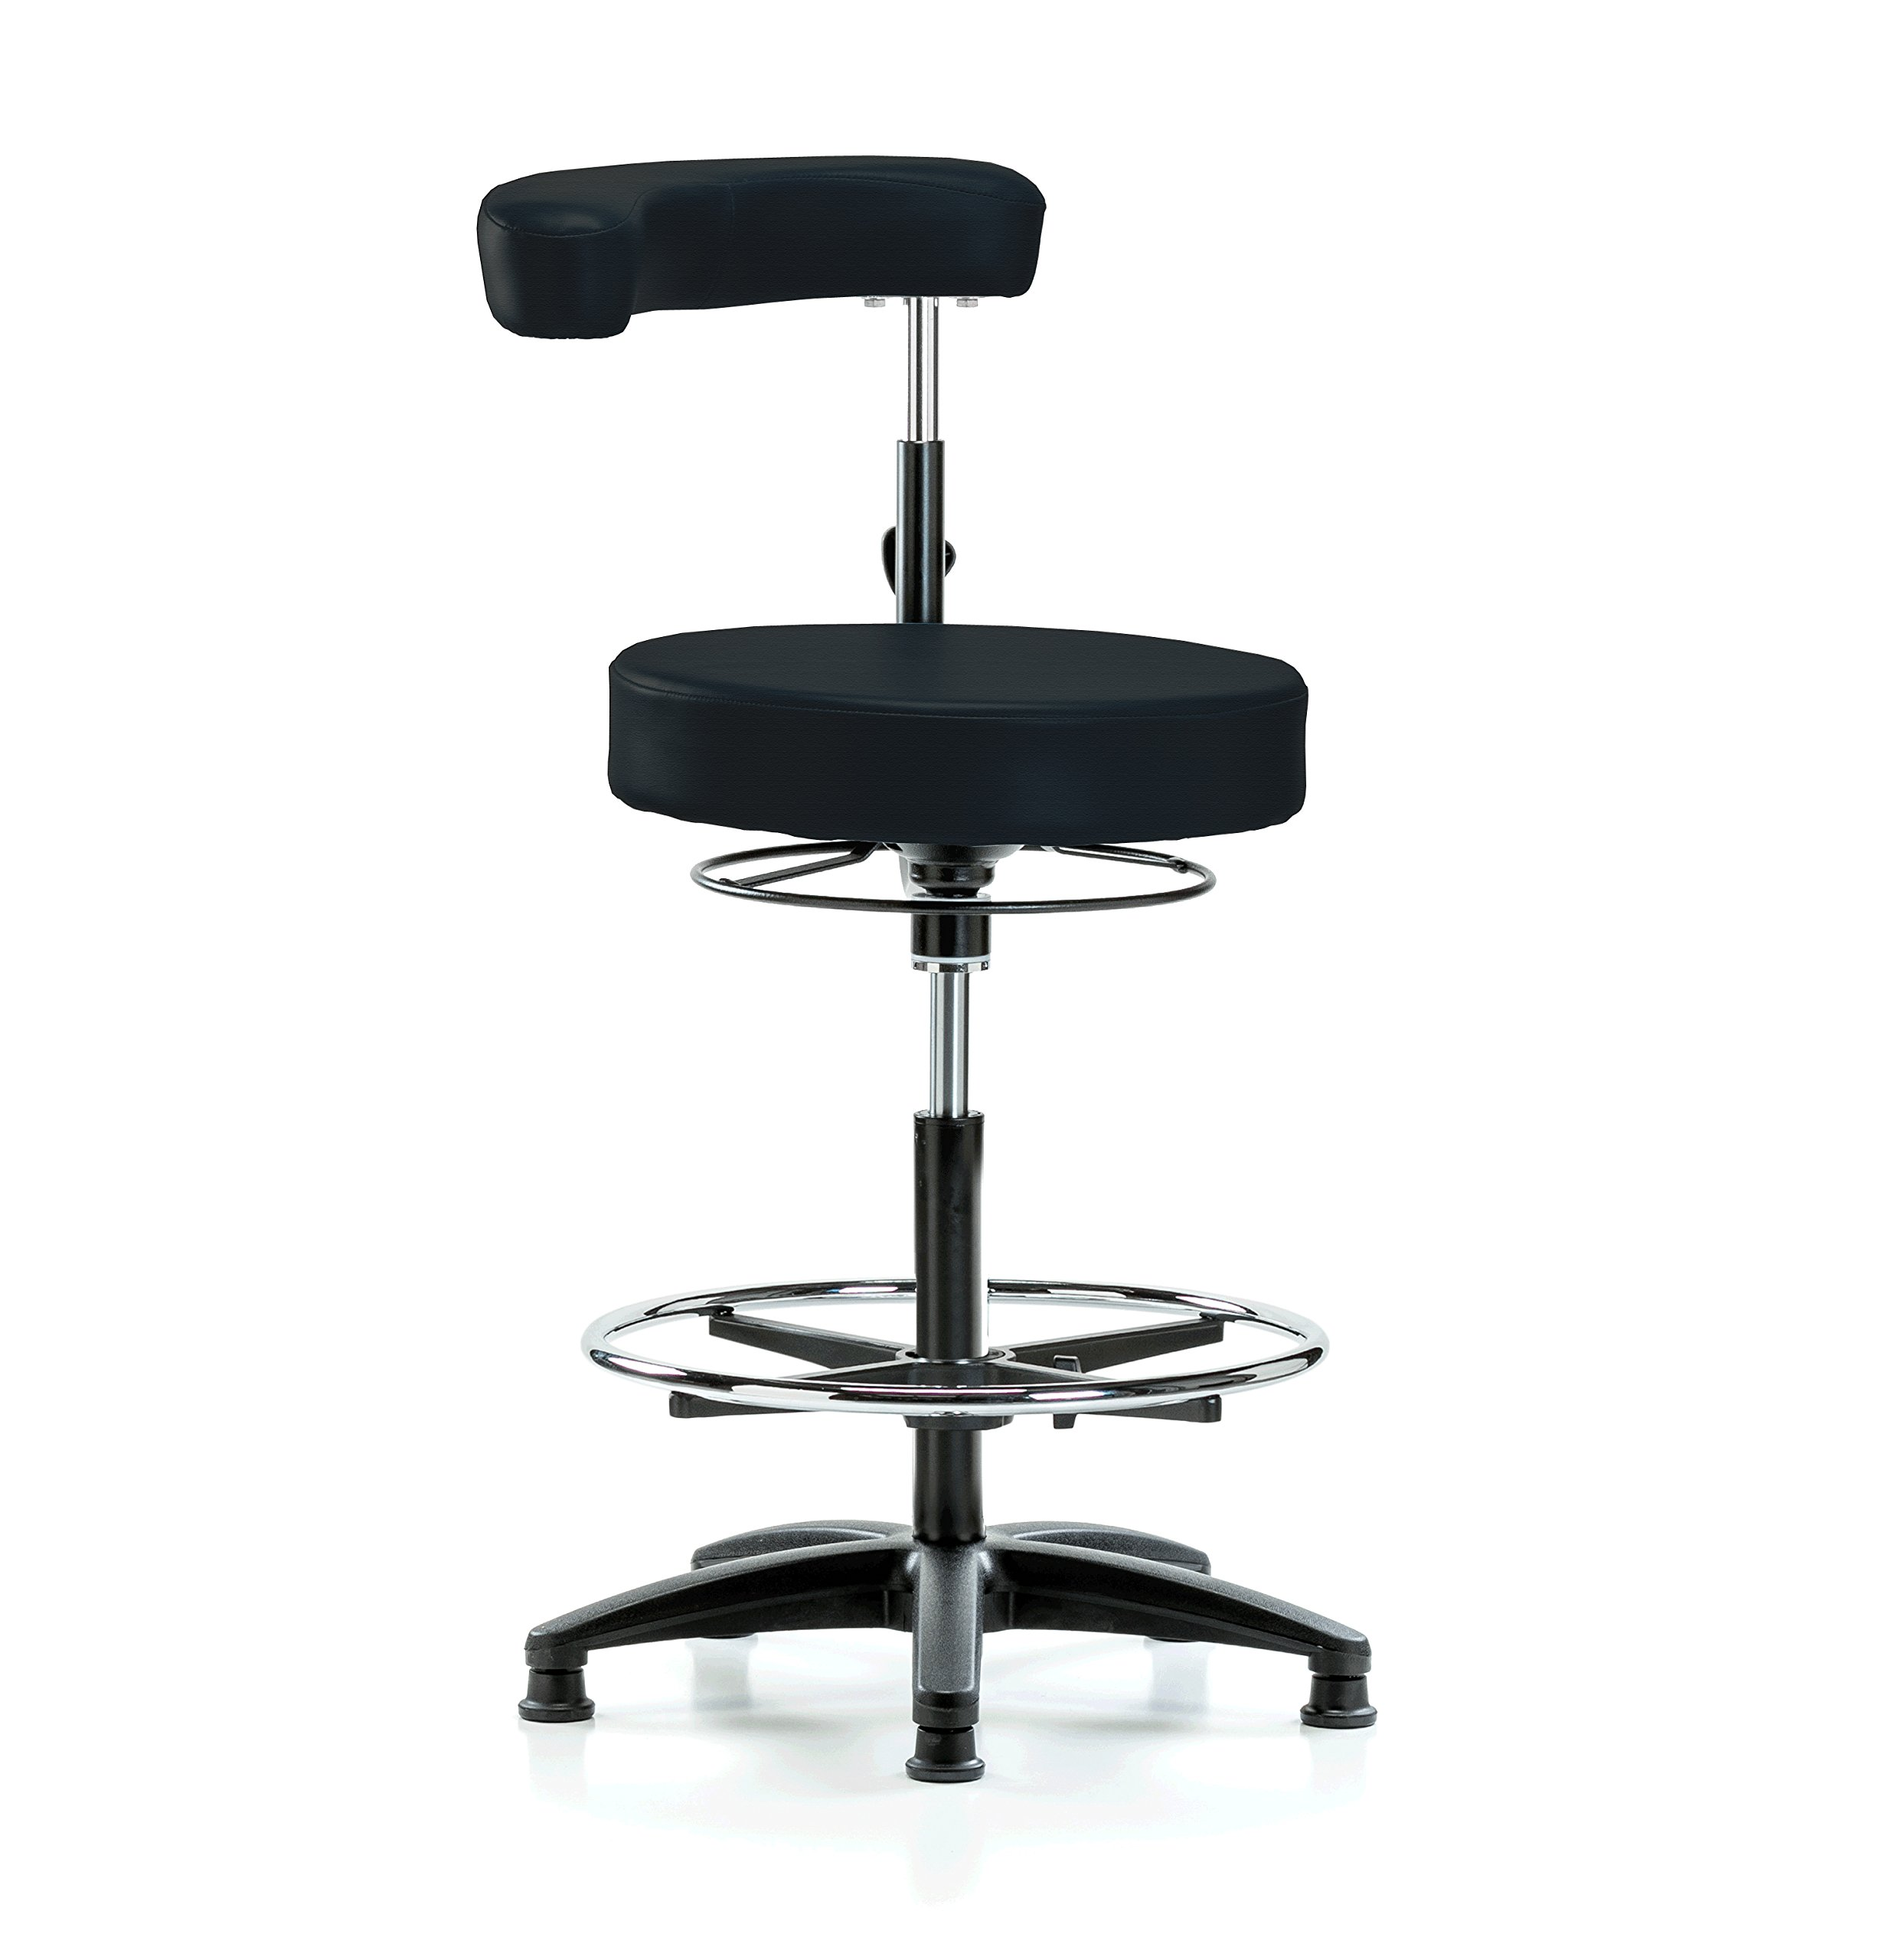 Perch Dental Stool Adjustable Height with Procedure Arm and Foot Ring, Stationary Caps, Counter Height (Black Fabric) by Perch Chairs & Stools